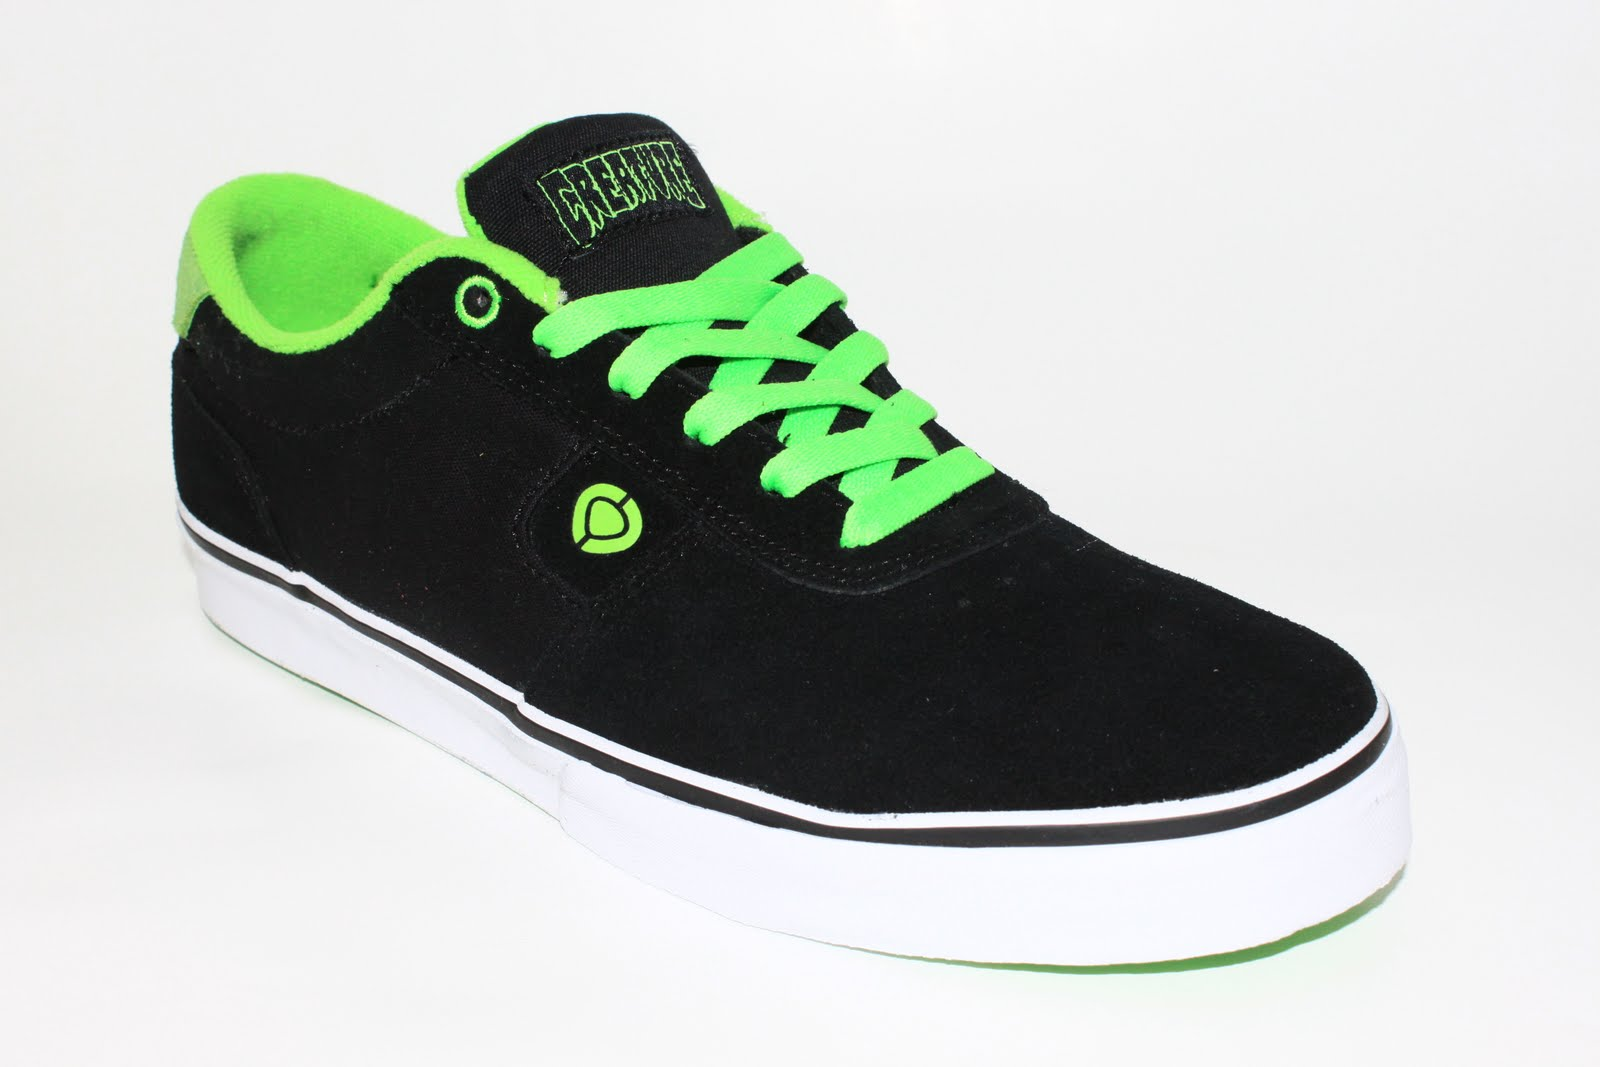 9aacb47c5c News and Updates  Circa  Creature Gravette Pro Model Shoes.